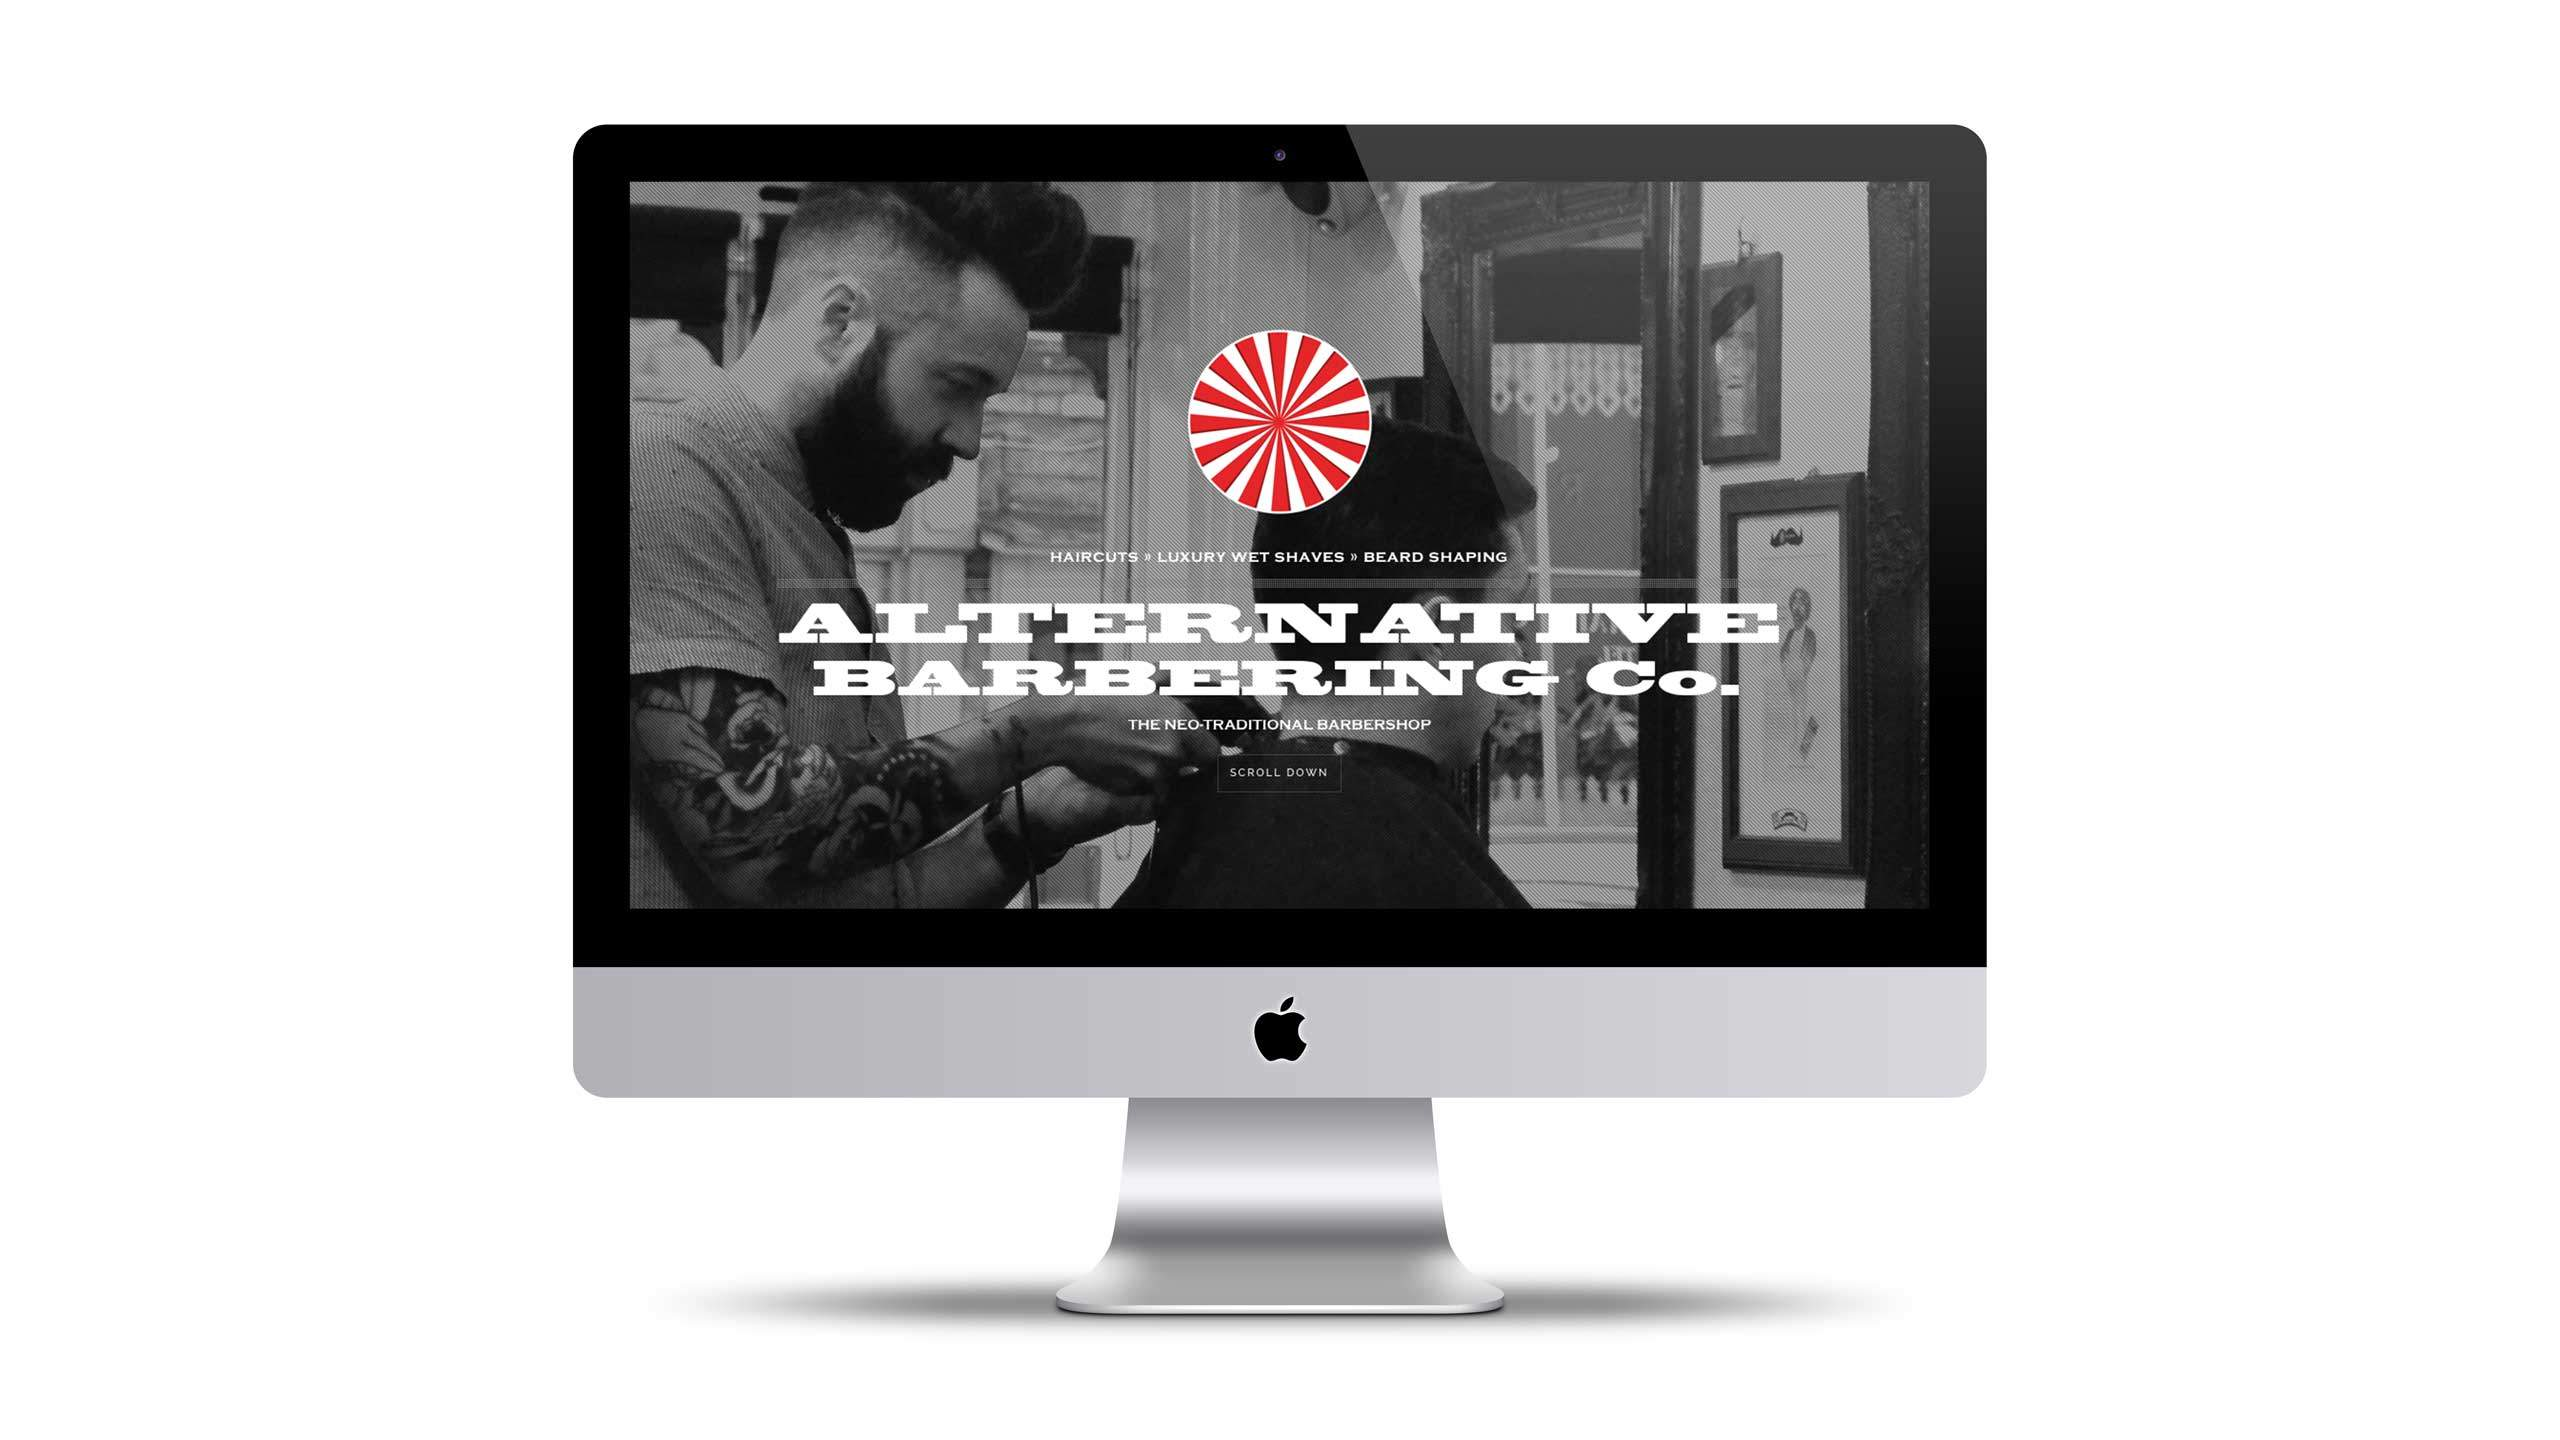 Barbershop website design on iMac home page